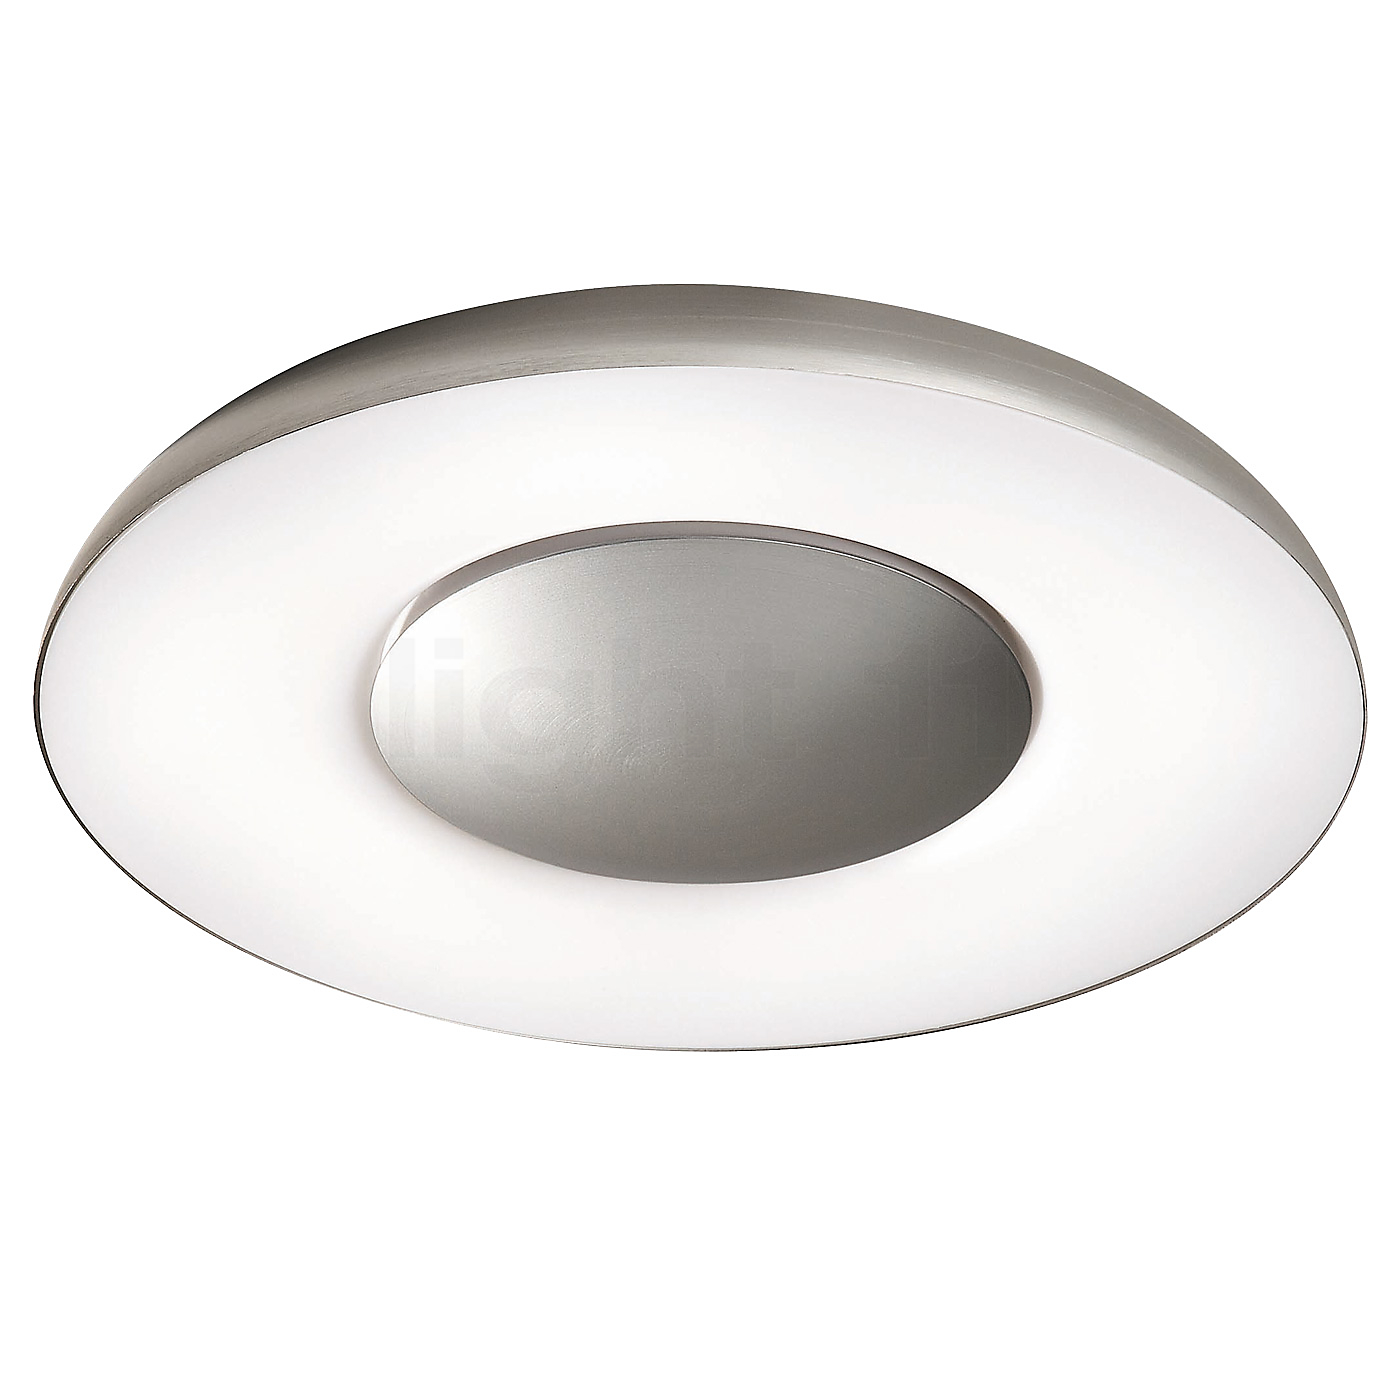 philips ecomoods ceiling light photo - 7